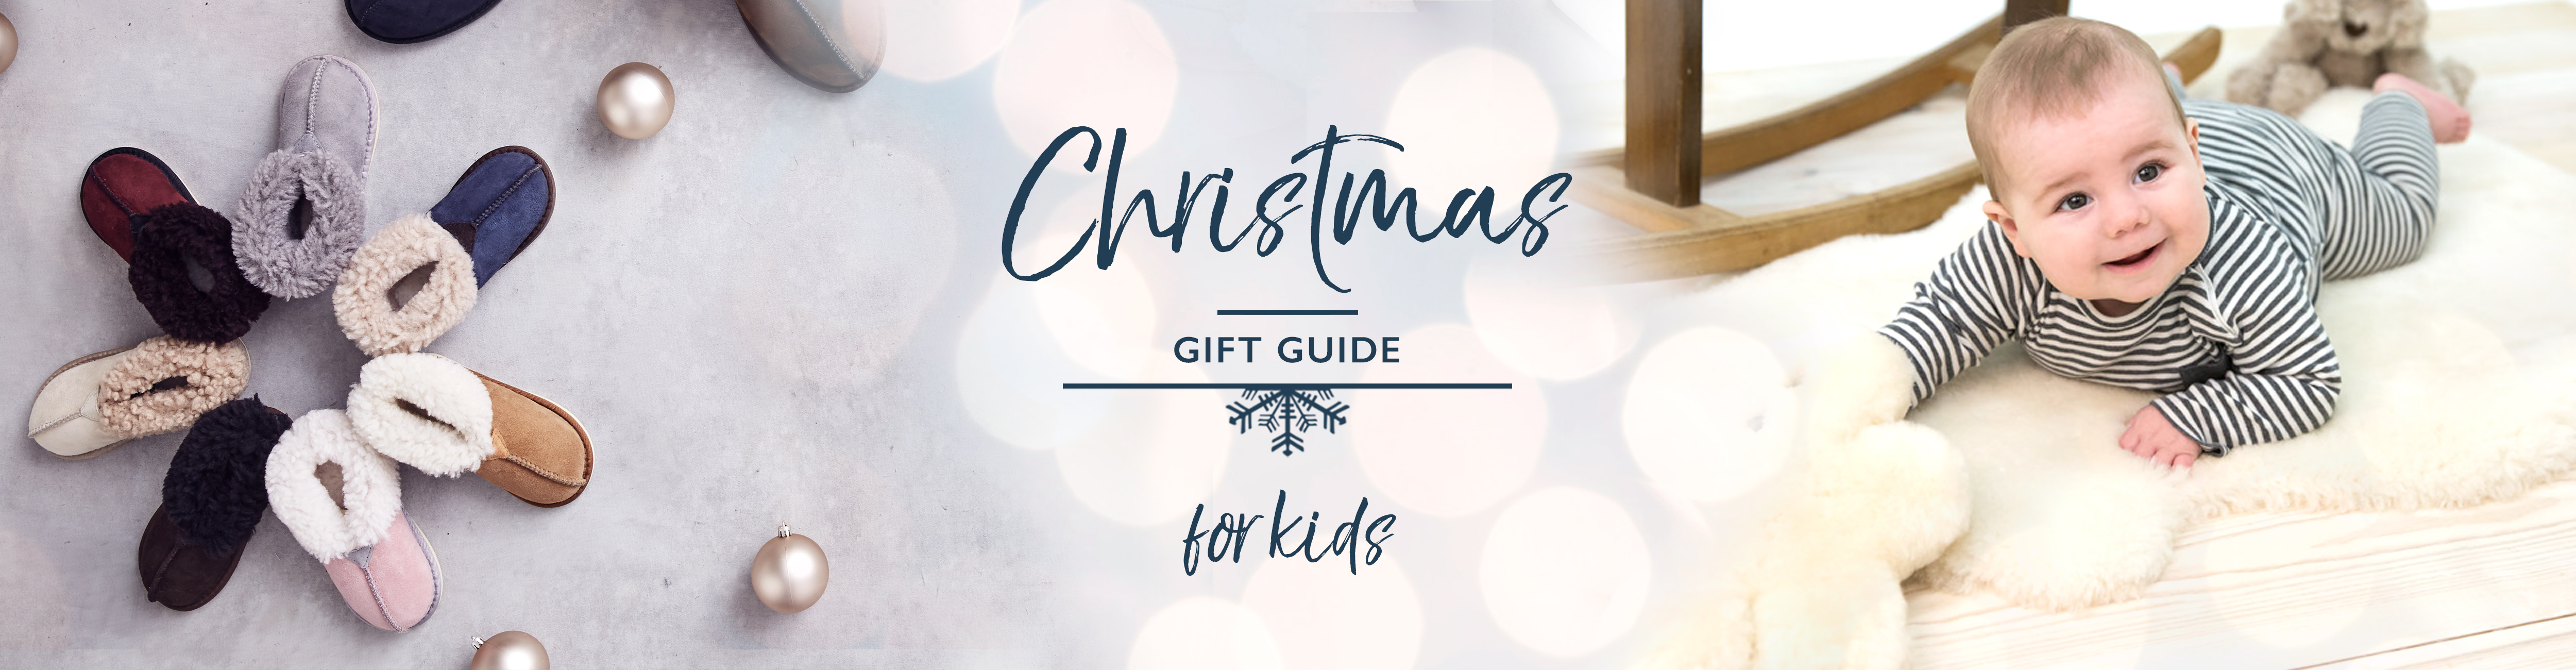 raw-gift-guide-header-kids.jpg